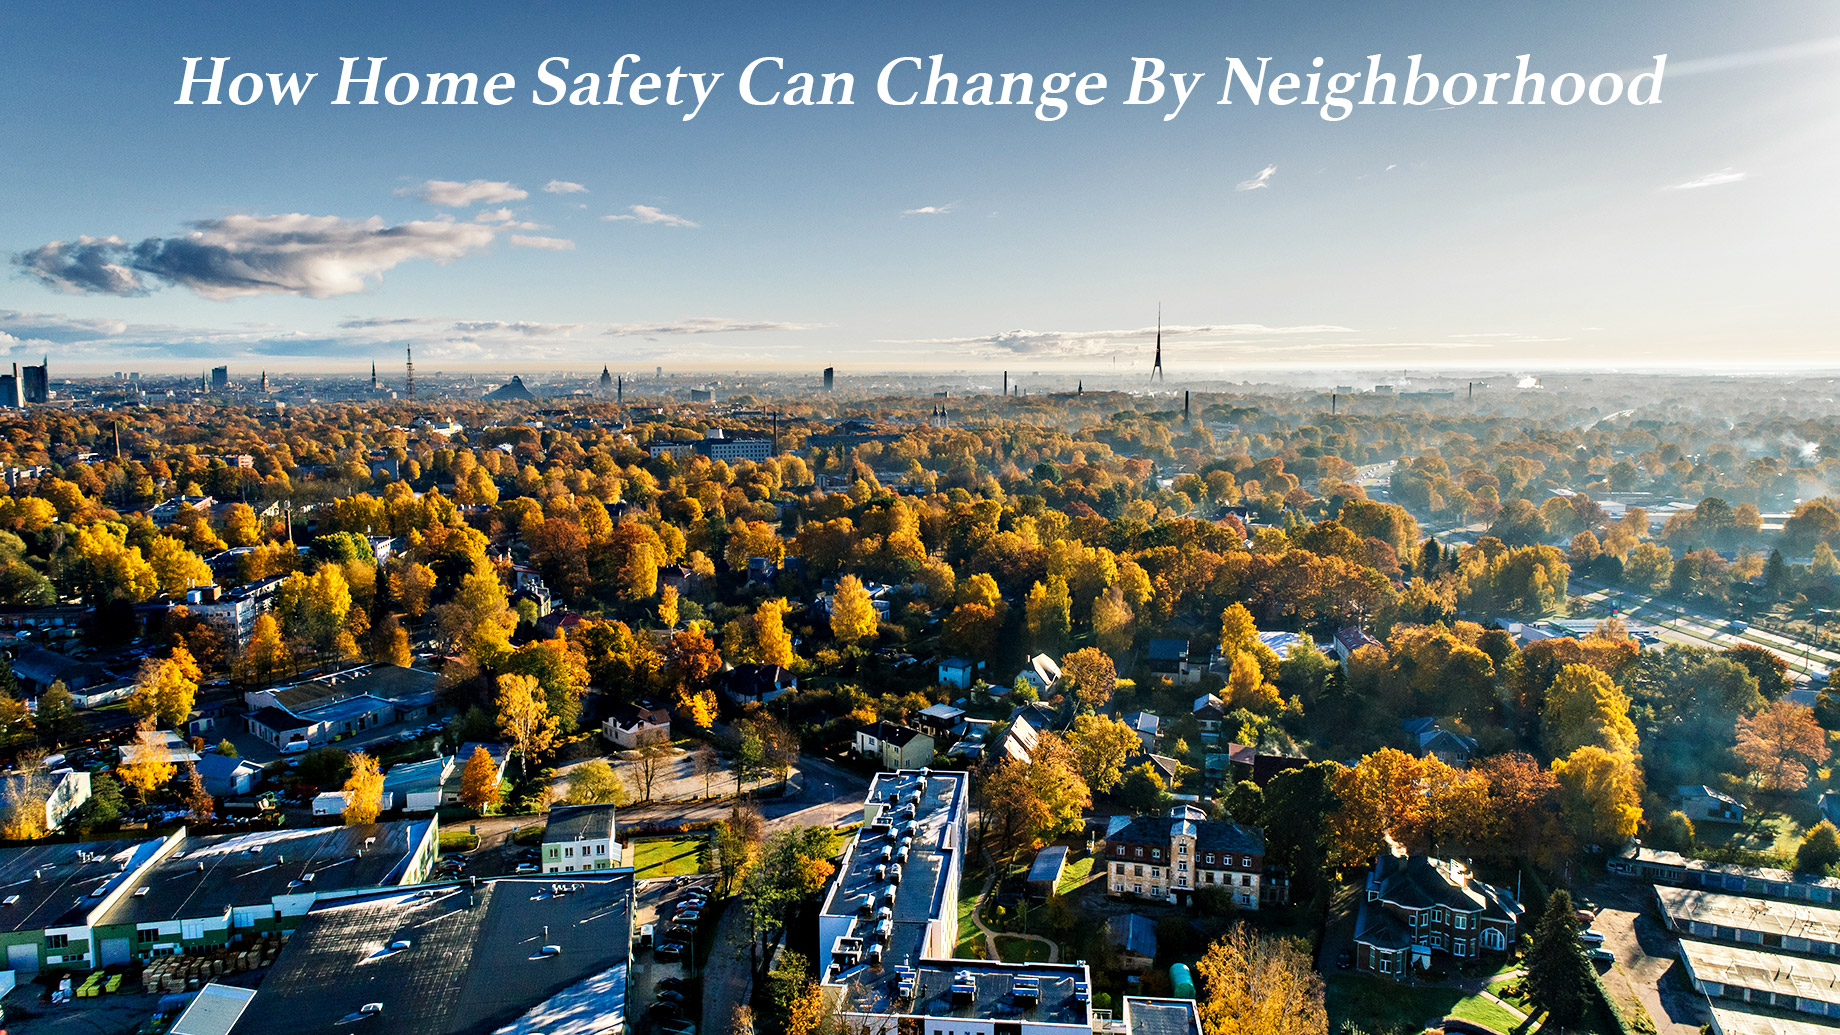 How Home Safety Can Change By Neighborhood